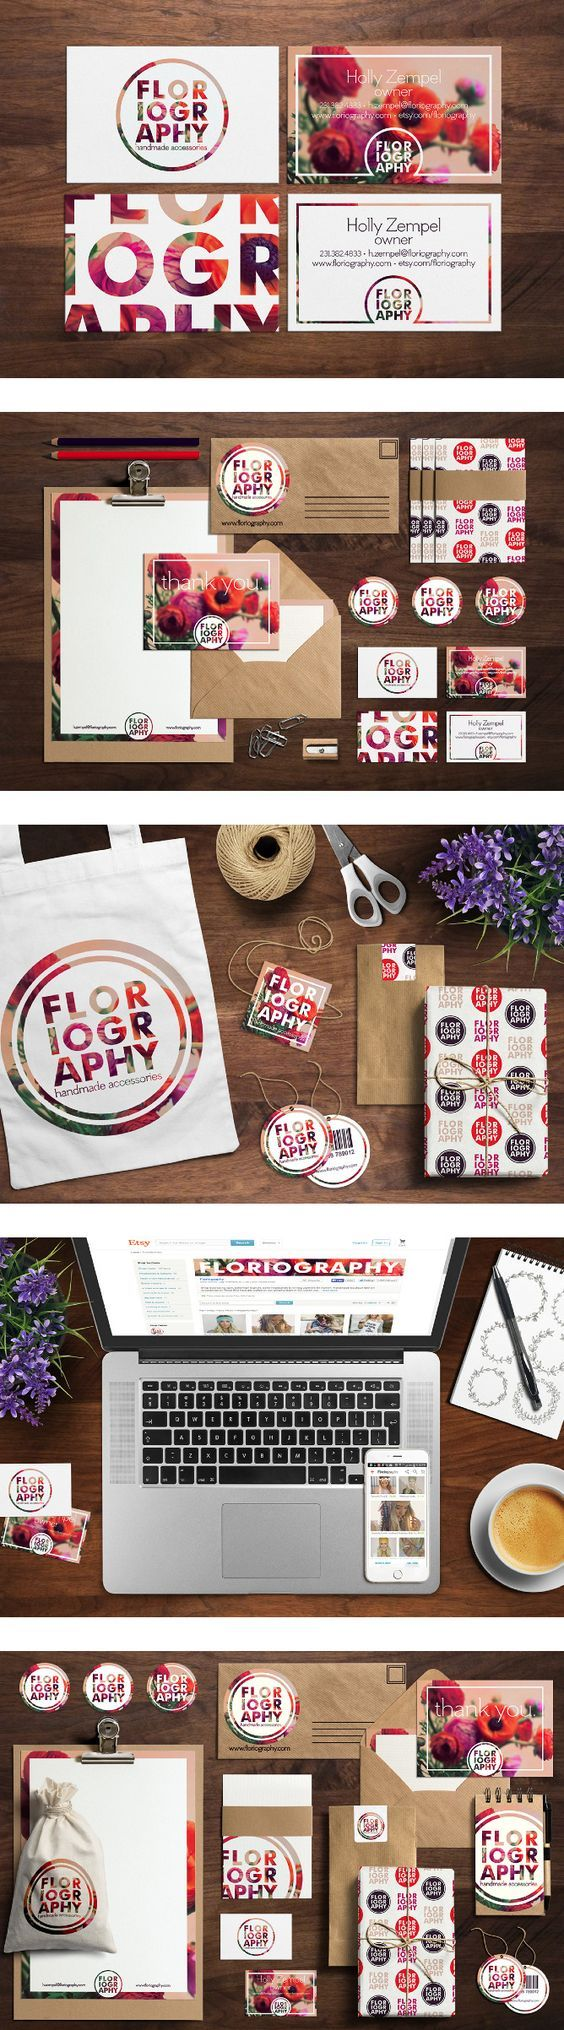 Floriography branding by Amanda Jewell: